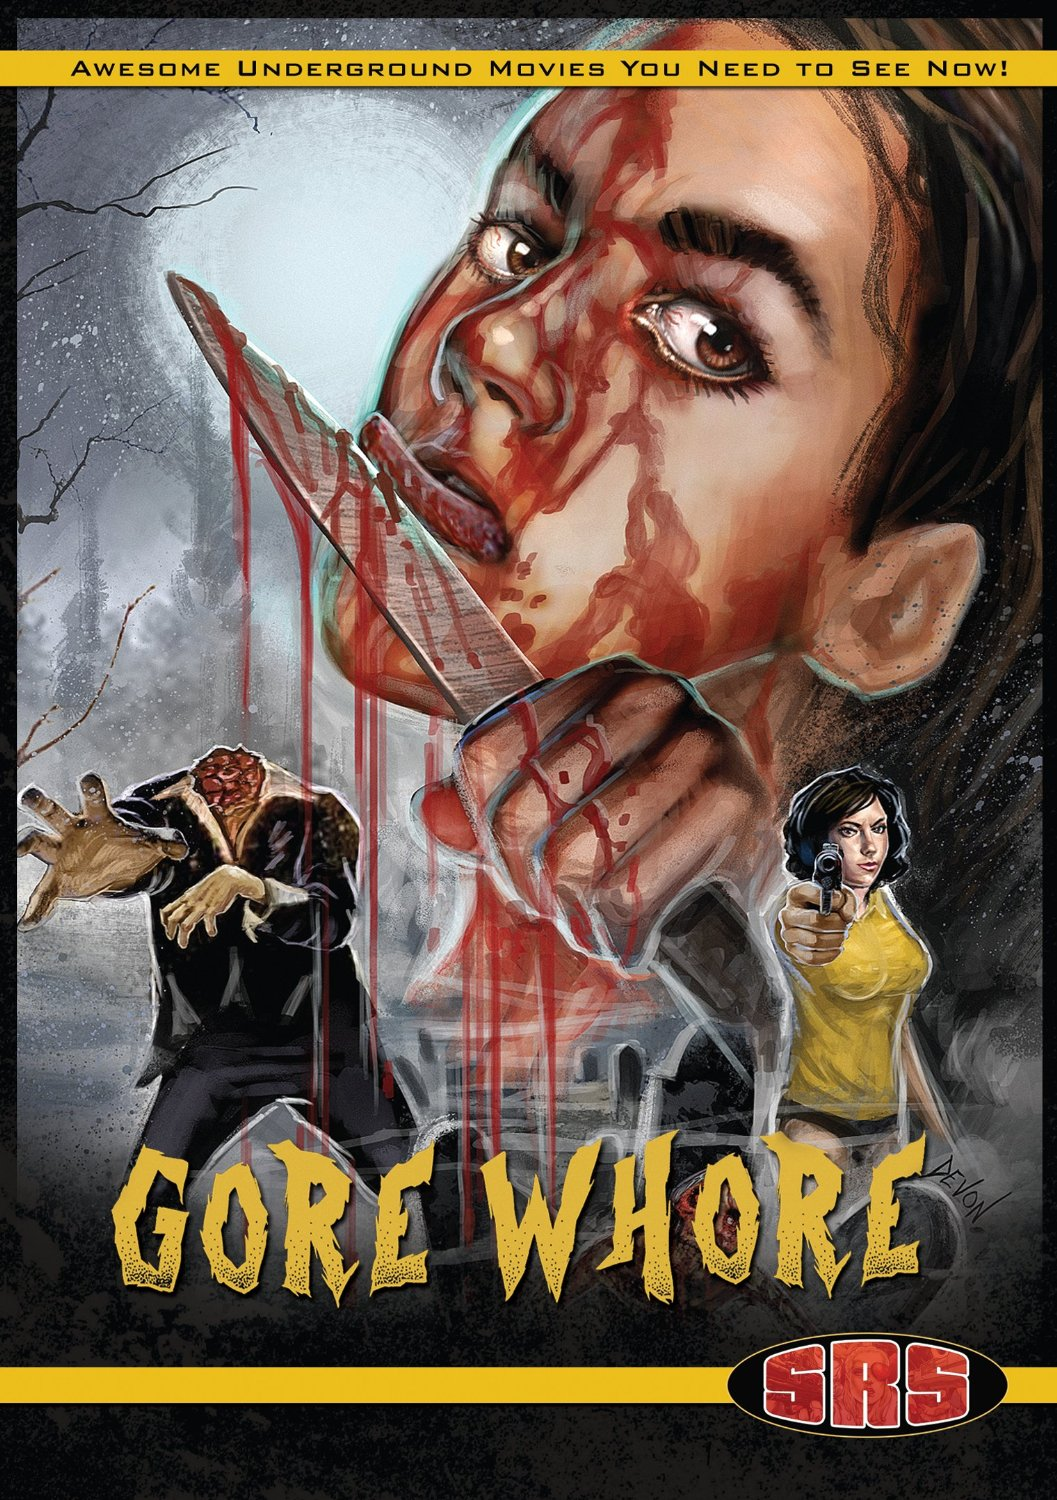 Gore Whore VHS+